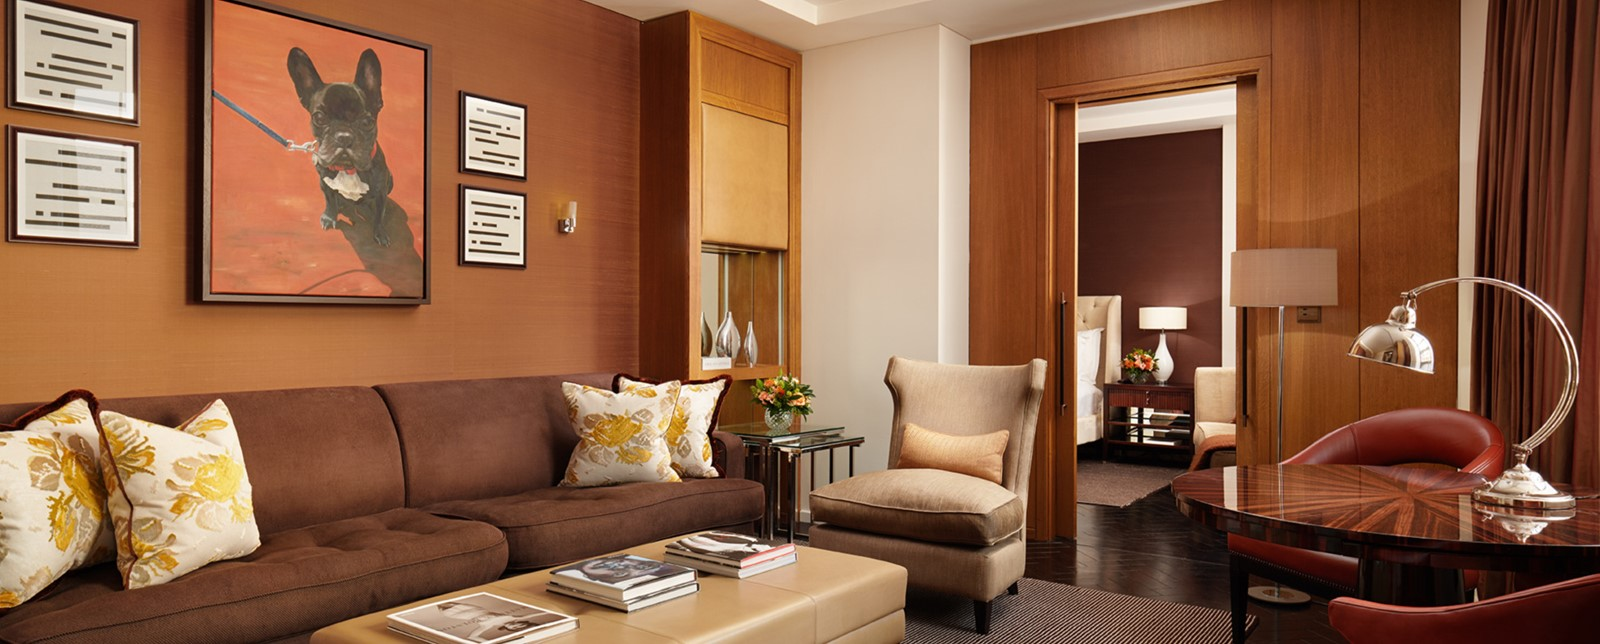 corinthia london whitehall suite